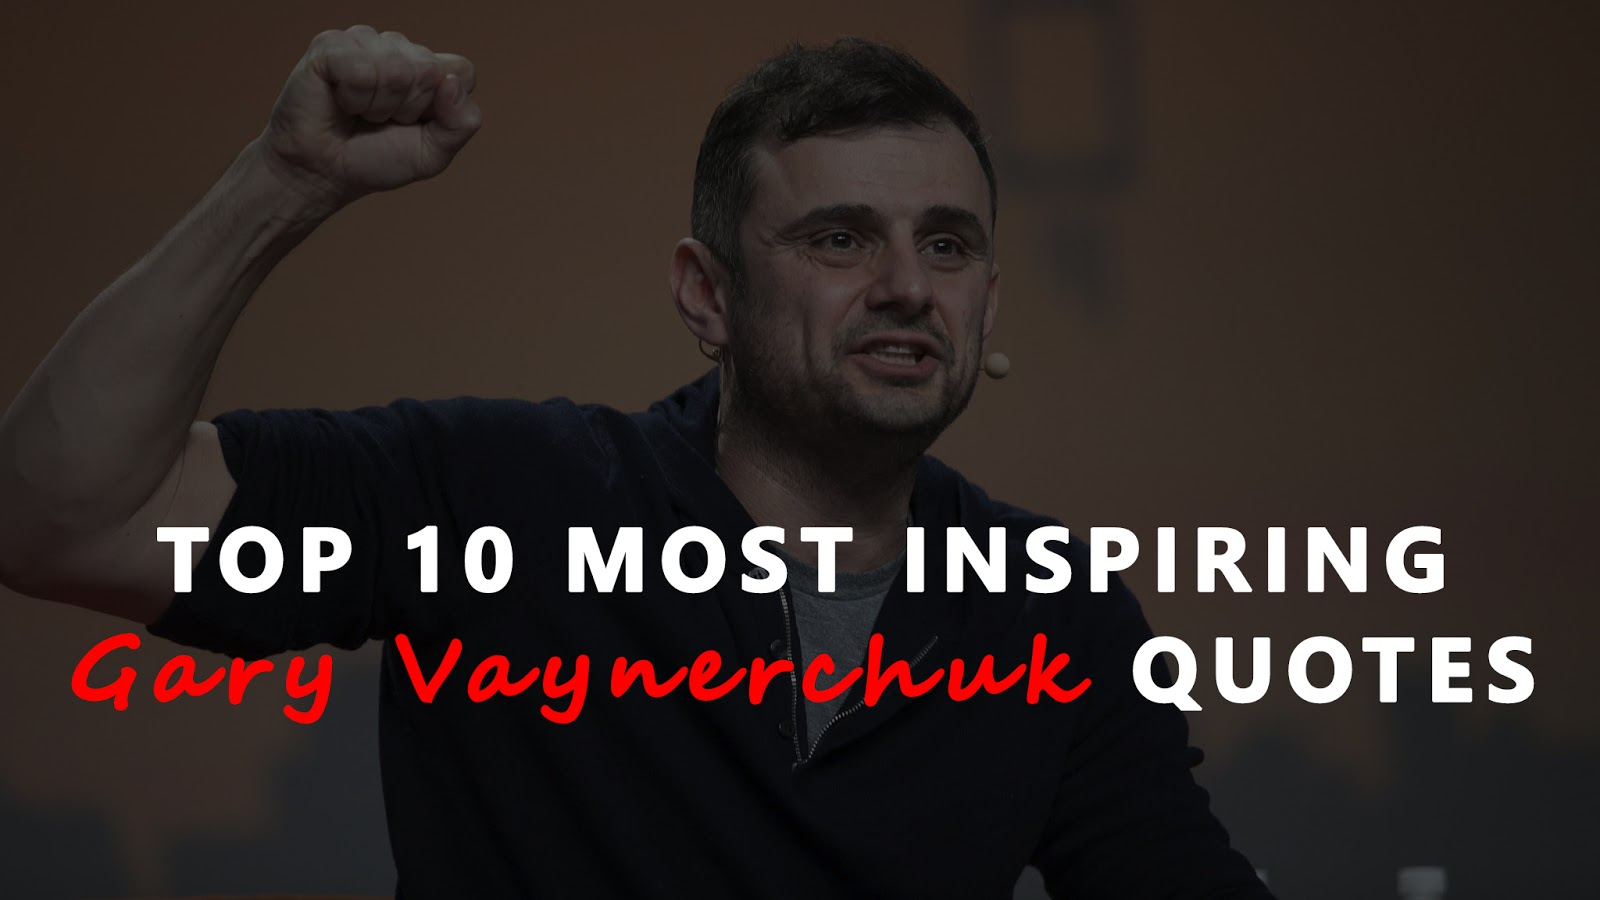 Top 10 Most Inspiring Gary Vaynerchuk Quotes